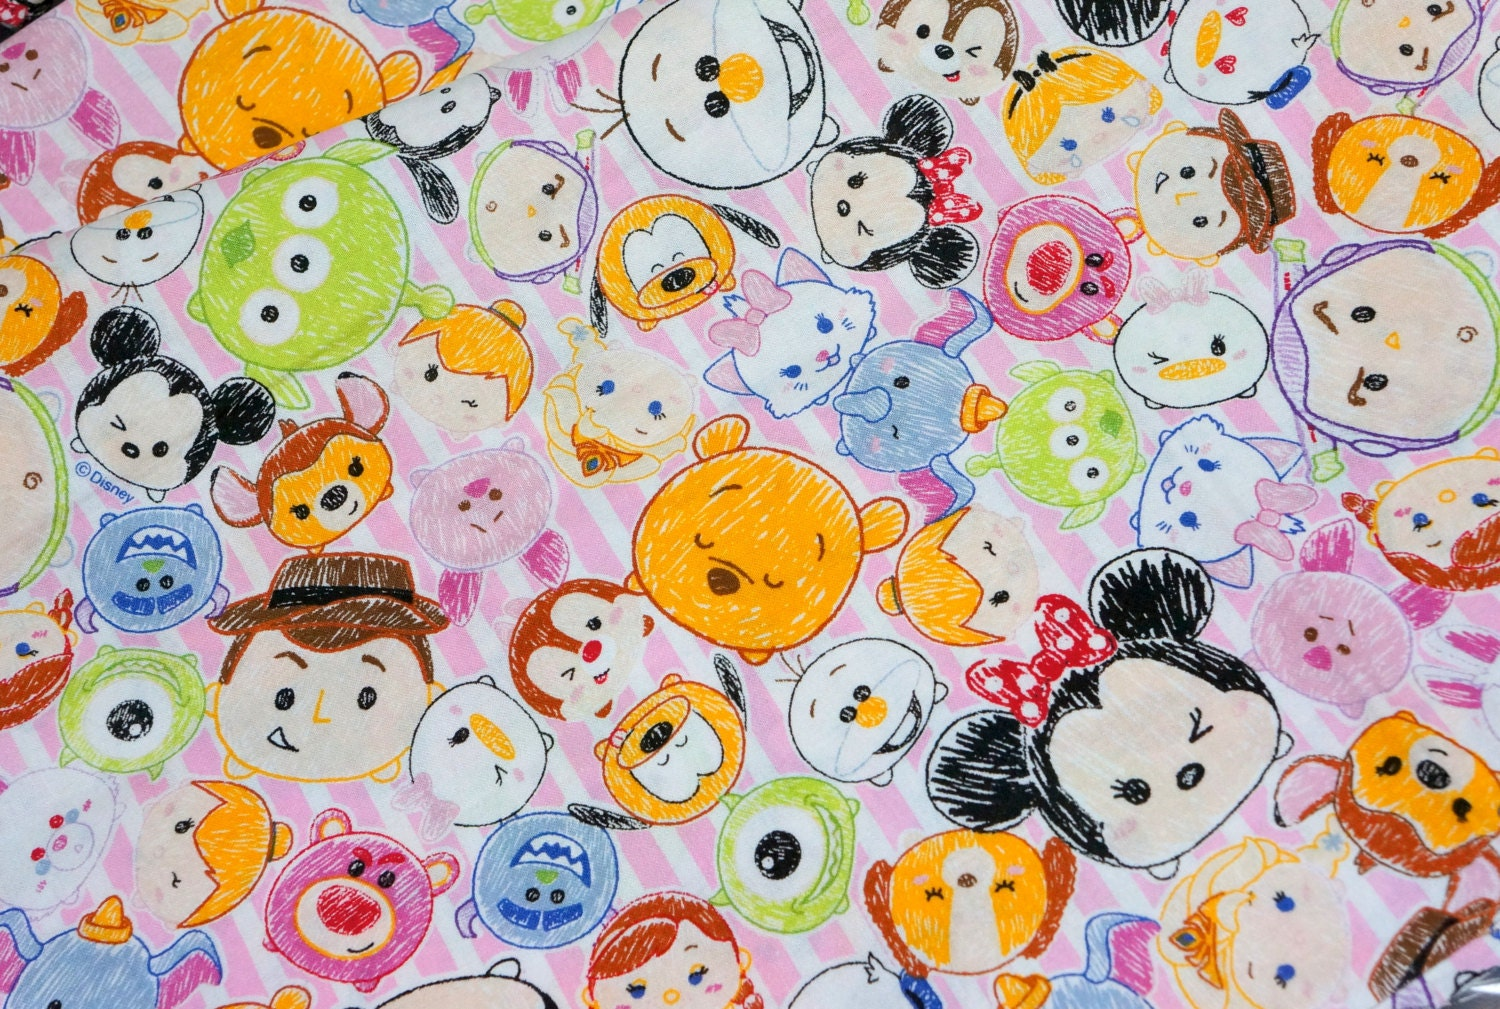 This is a picture of Tactueux Tsum Tsum Characters Names